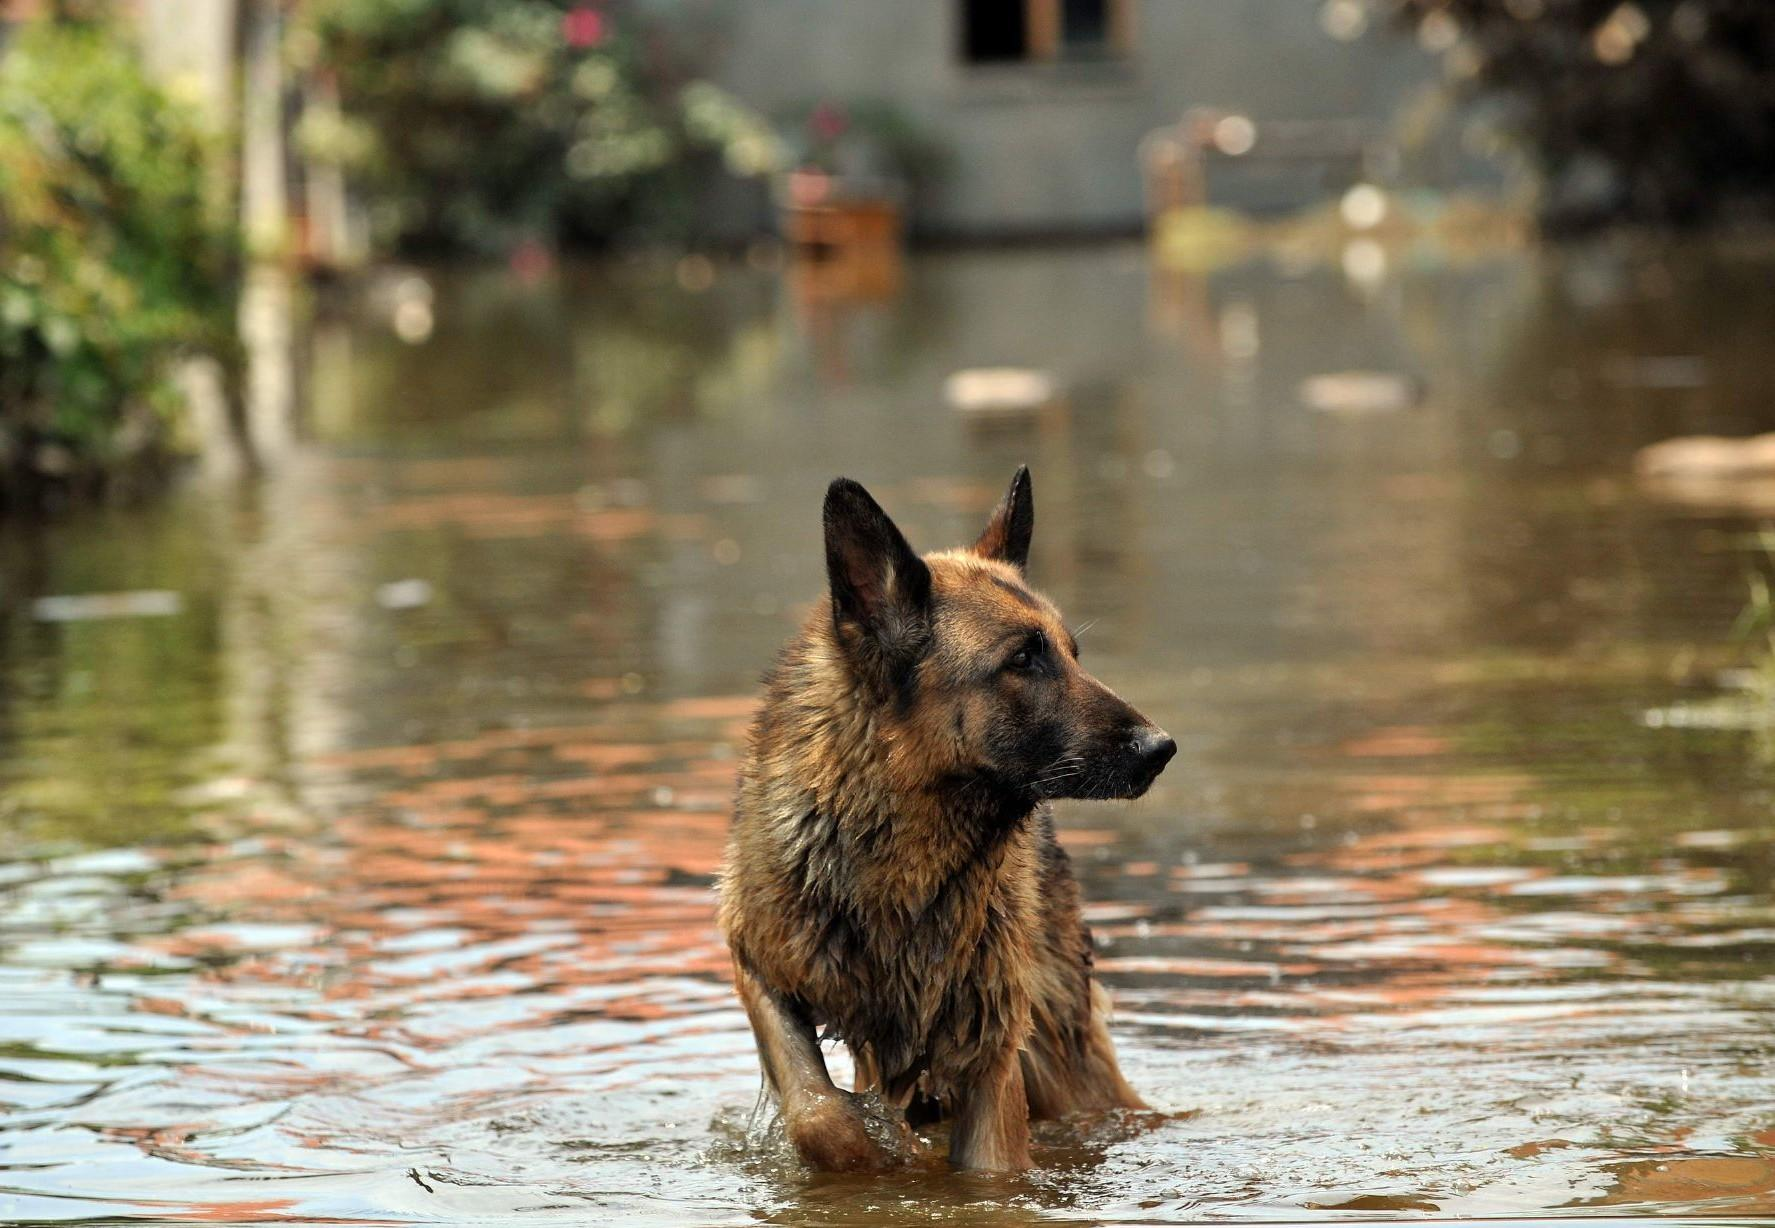 A dog affected by severe flooding